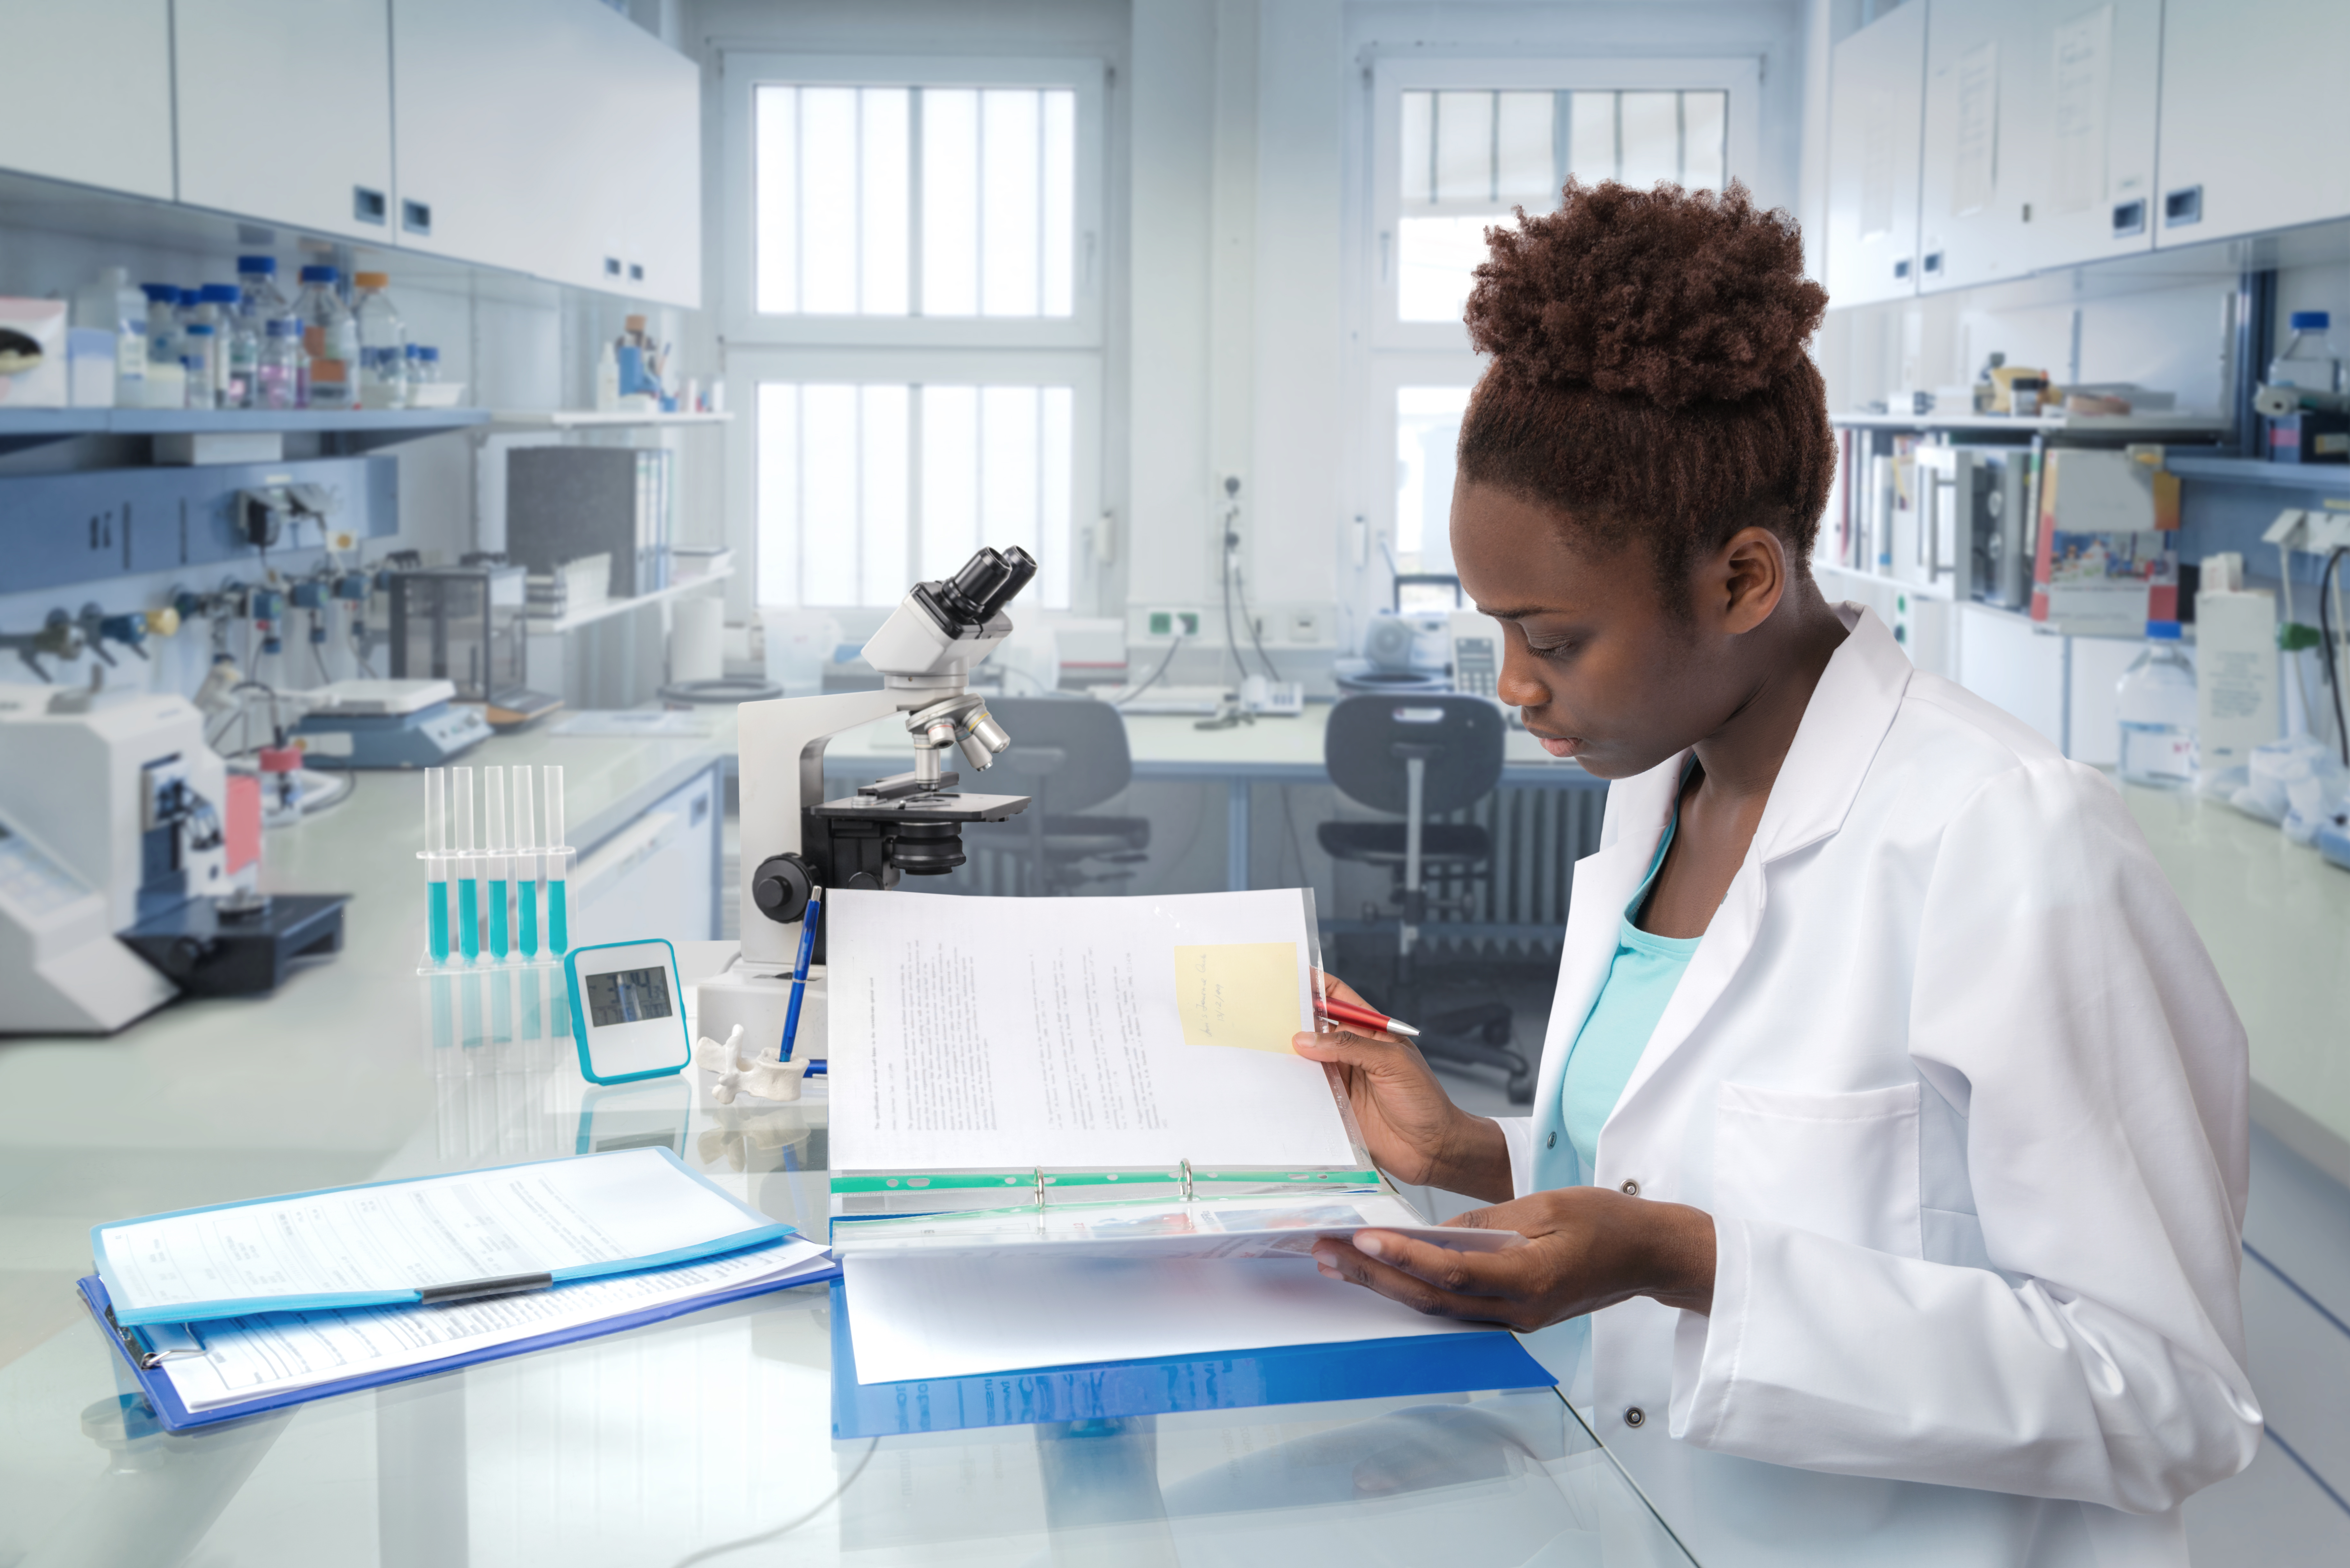 a woman scientist analyzing data in a binder at the lab